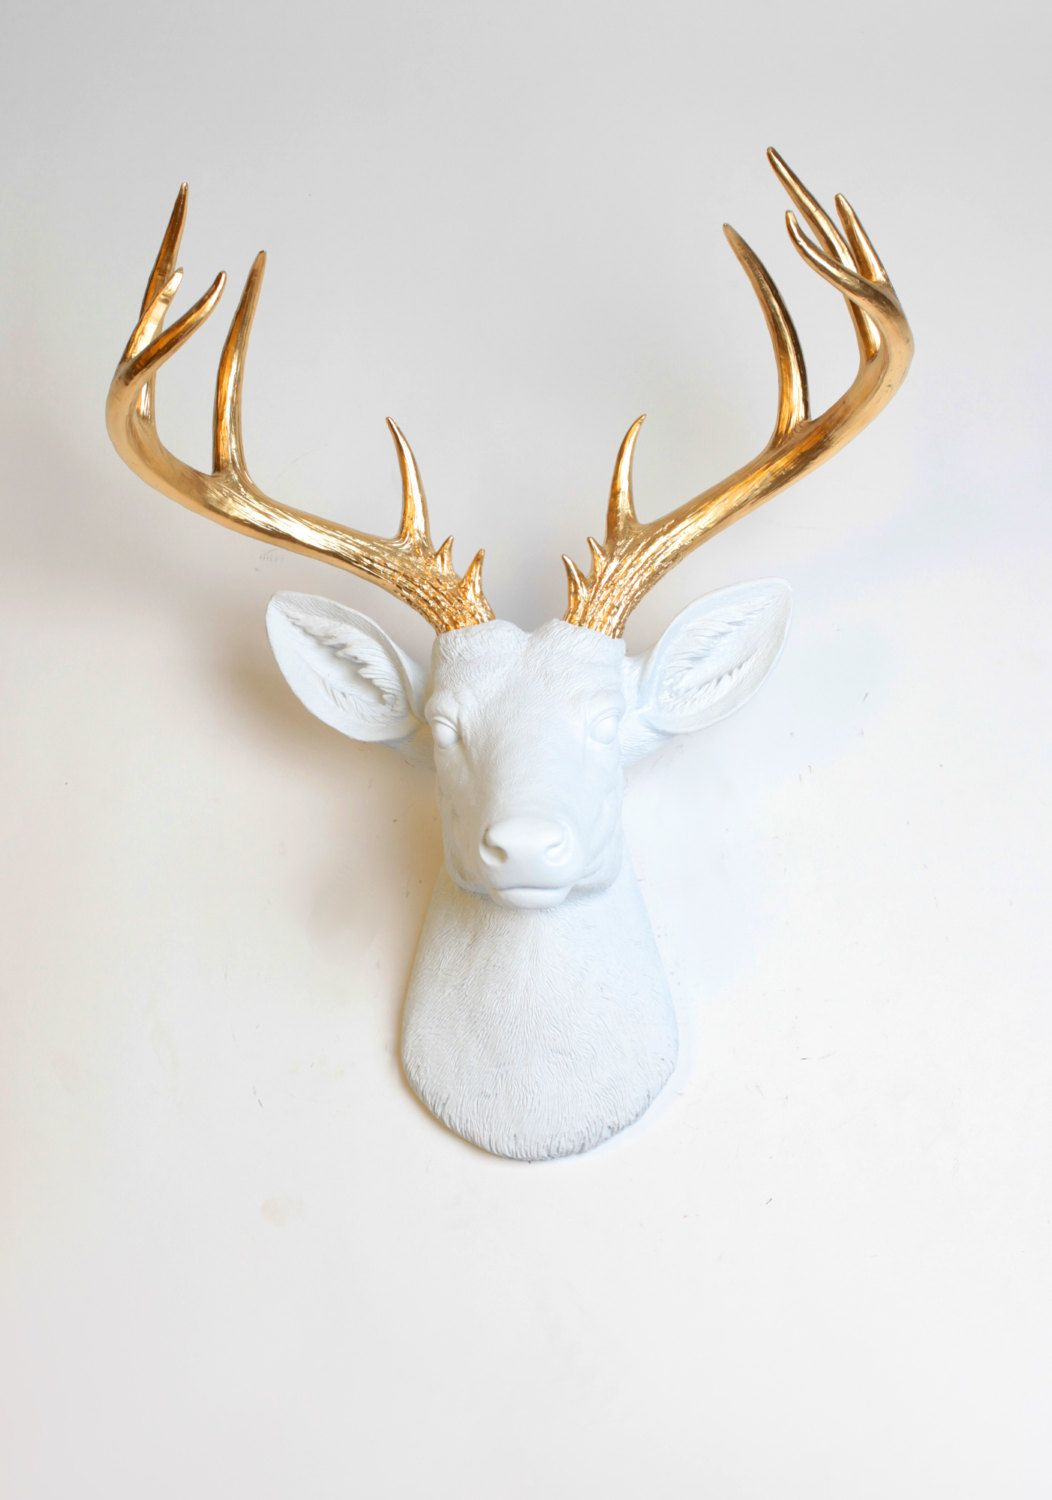 Fake Taxidermy Deer Head Faux Taxidermy Deer Head Wall Mount Décor The Xl Alfred